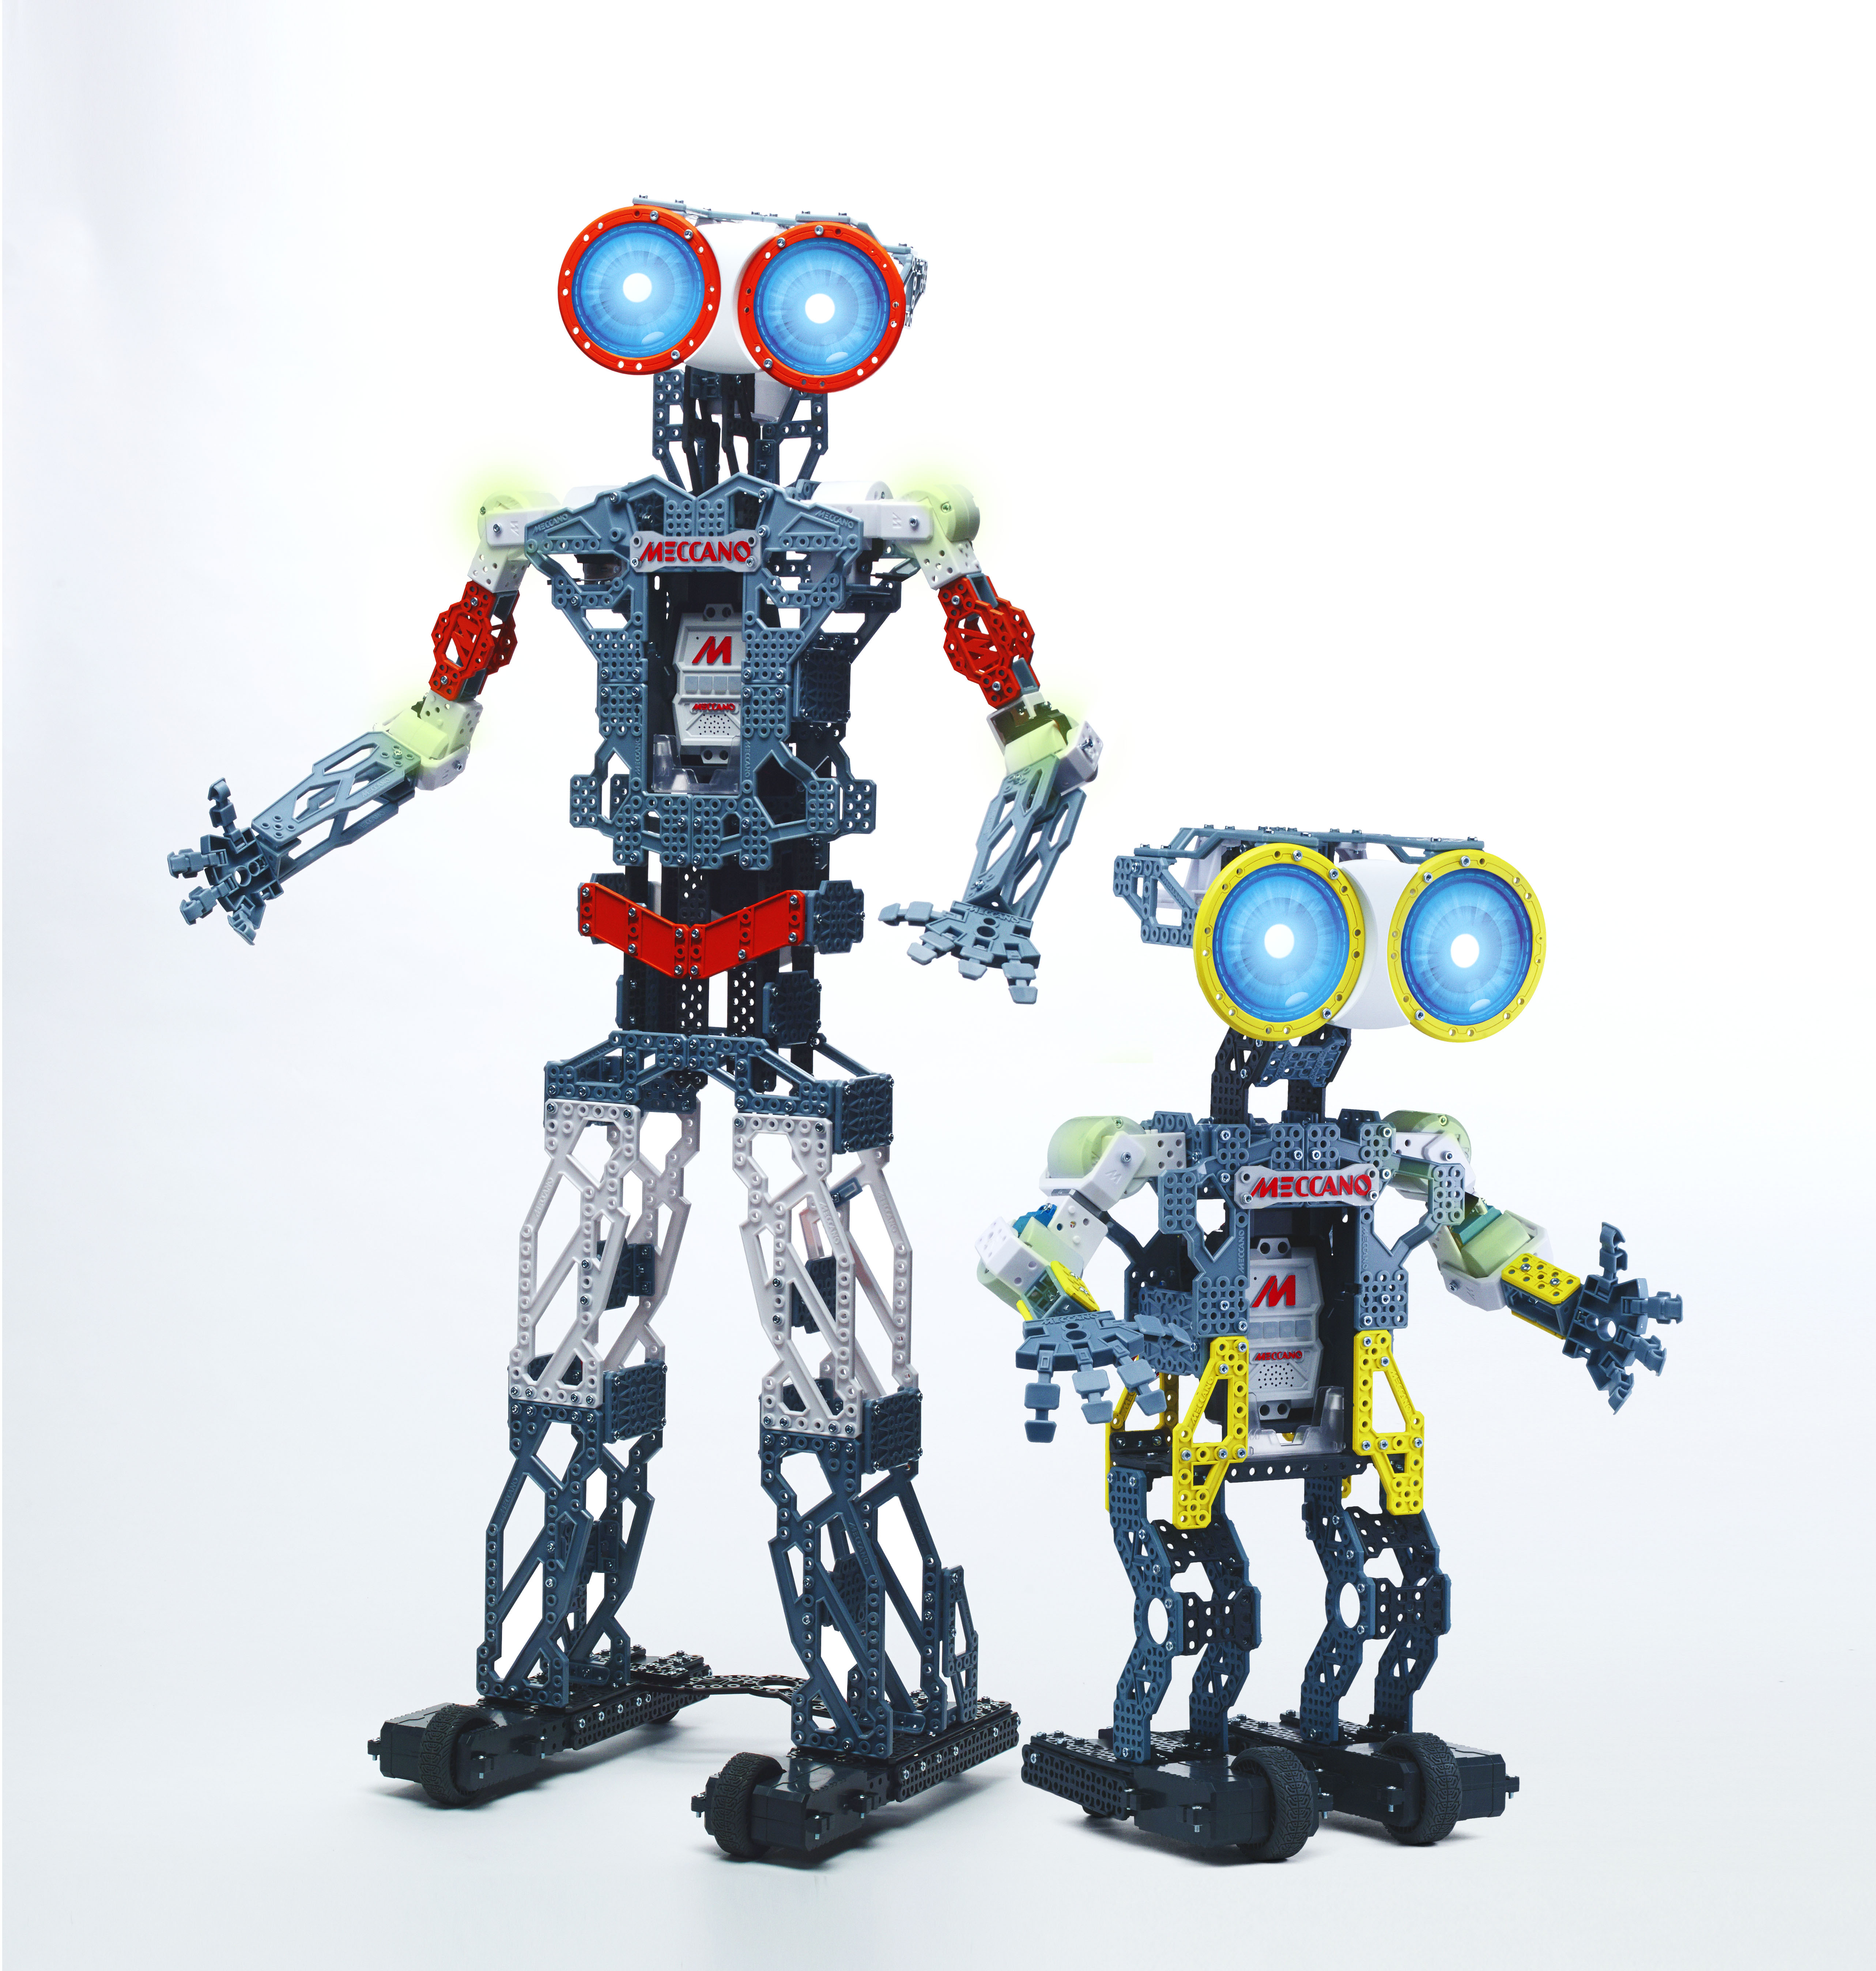 Meccanoid G15 and G15KS